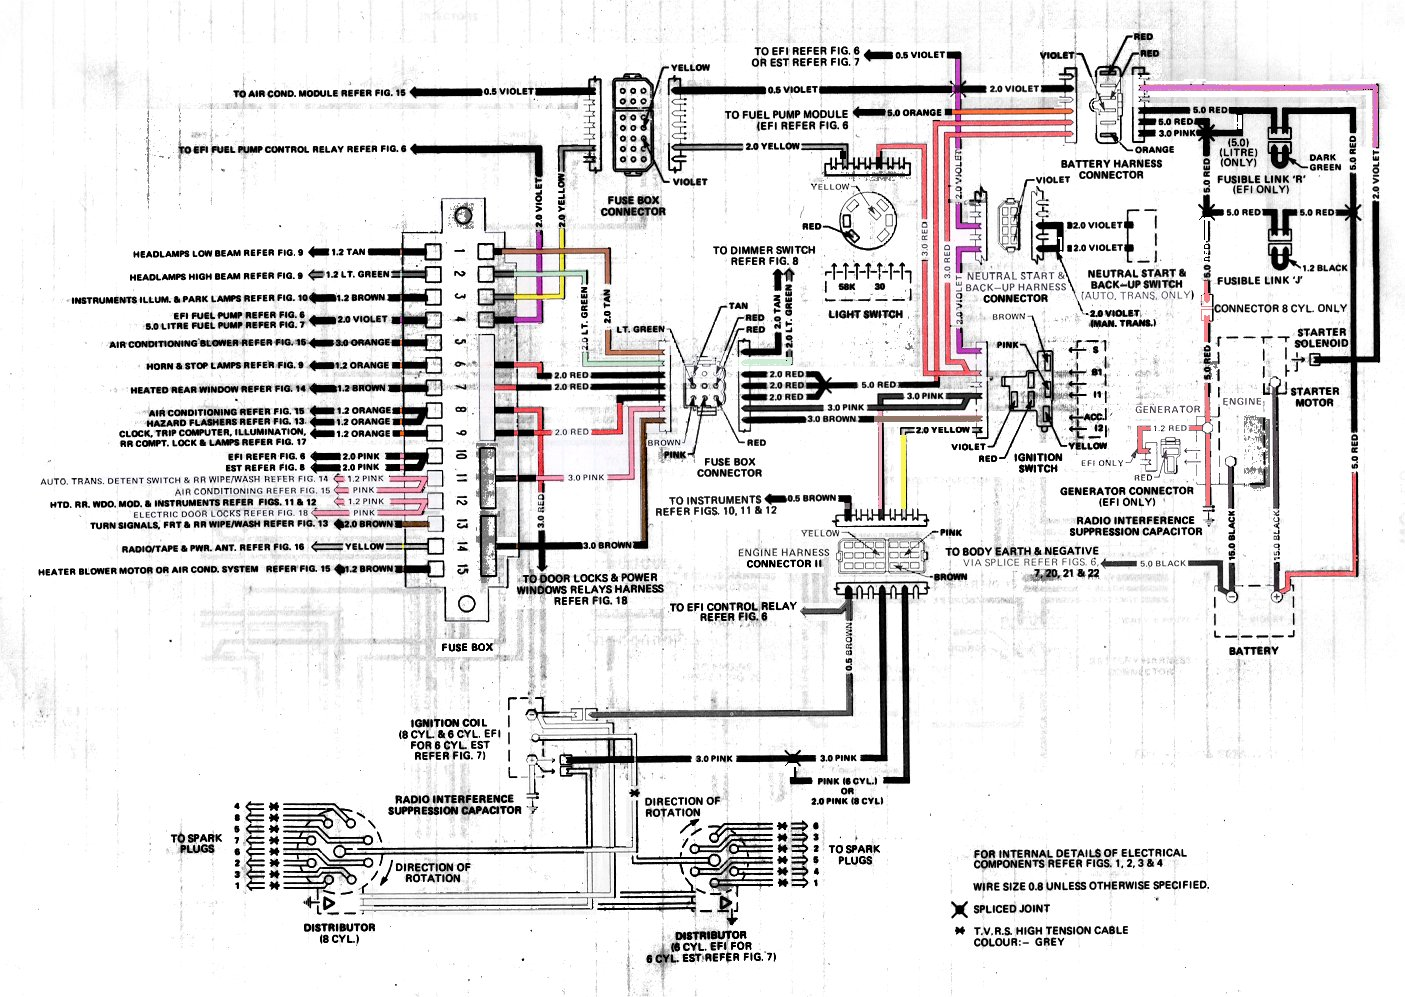 tq tg7000 generator keyswitch wiring diagram